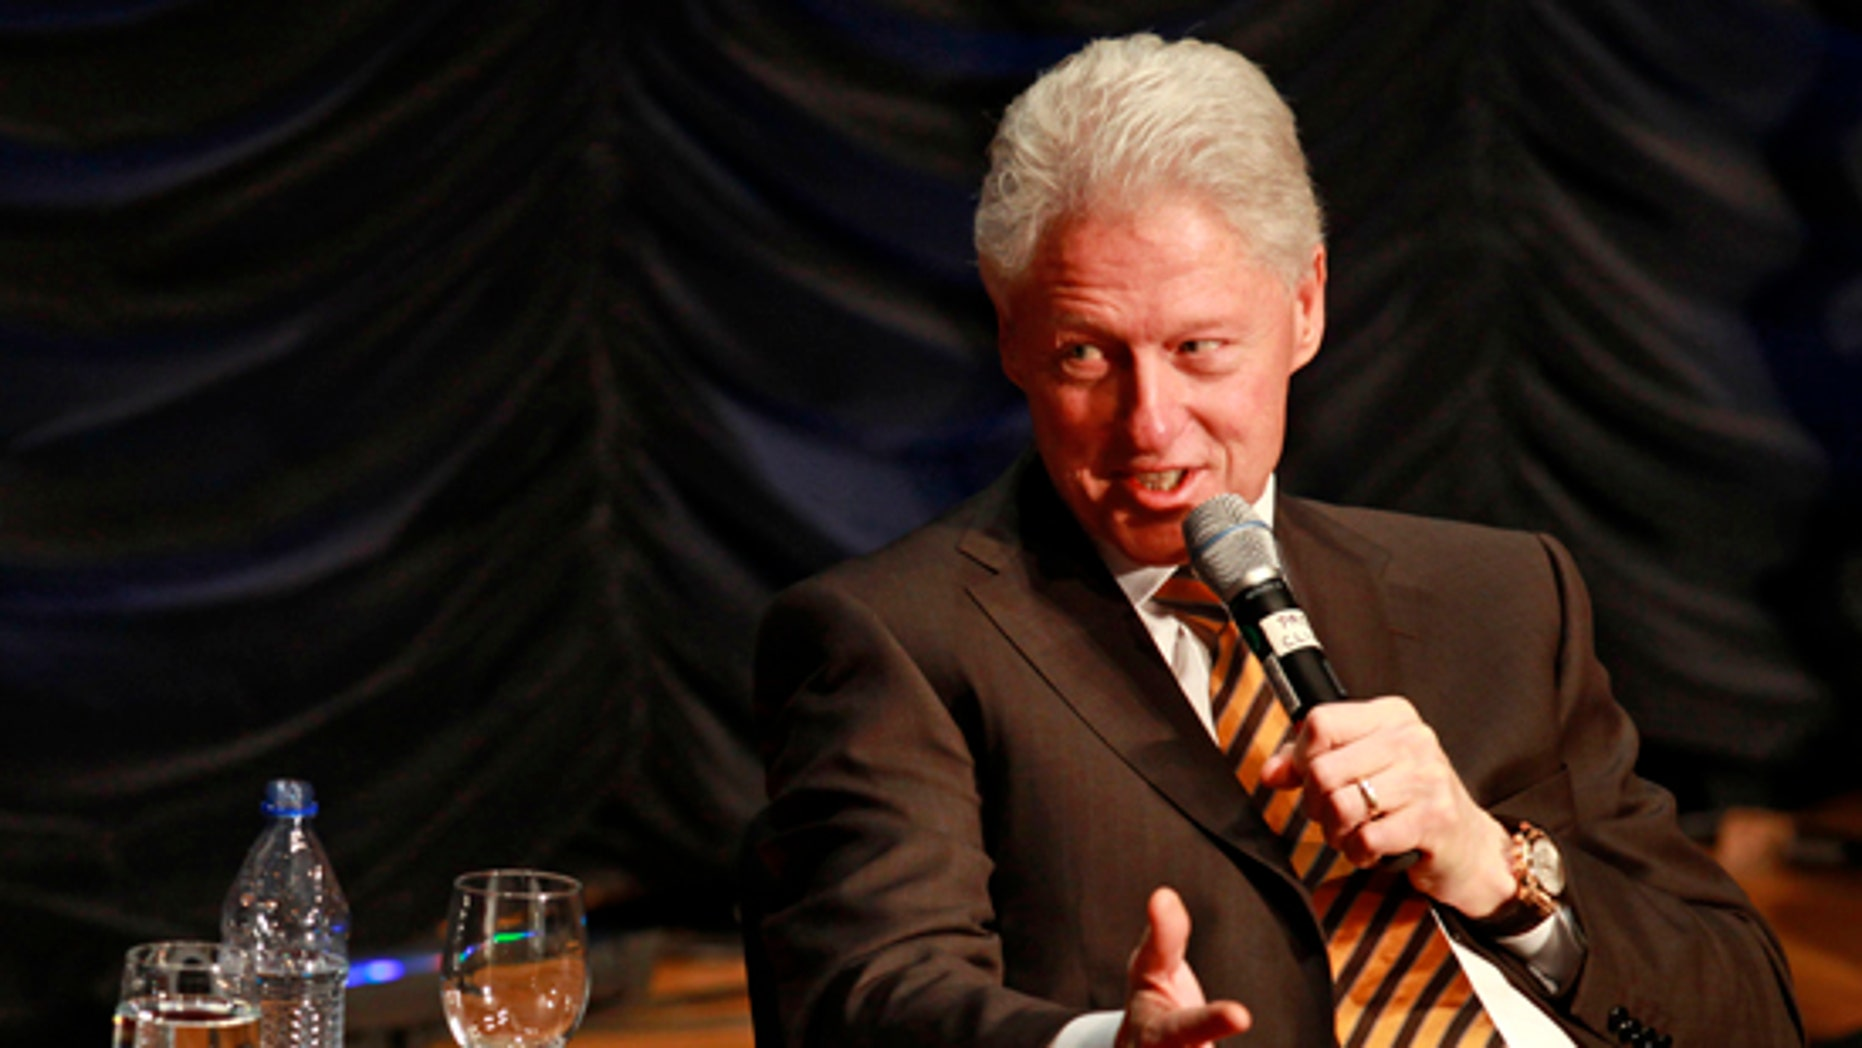 """Former President Bill Clinton answers questions after giving the keynote address at the """"25 Years of Dot Com Policy Impact Forum,"""" in Washington, on Tuesday, March 16, 2010. (AP)"""